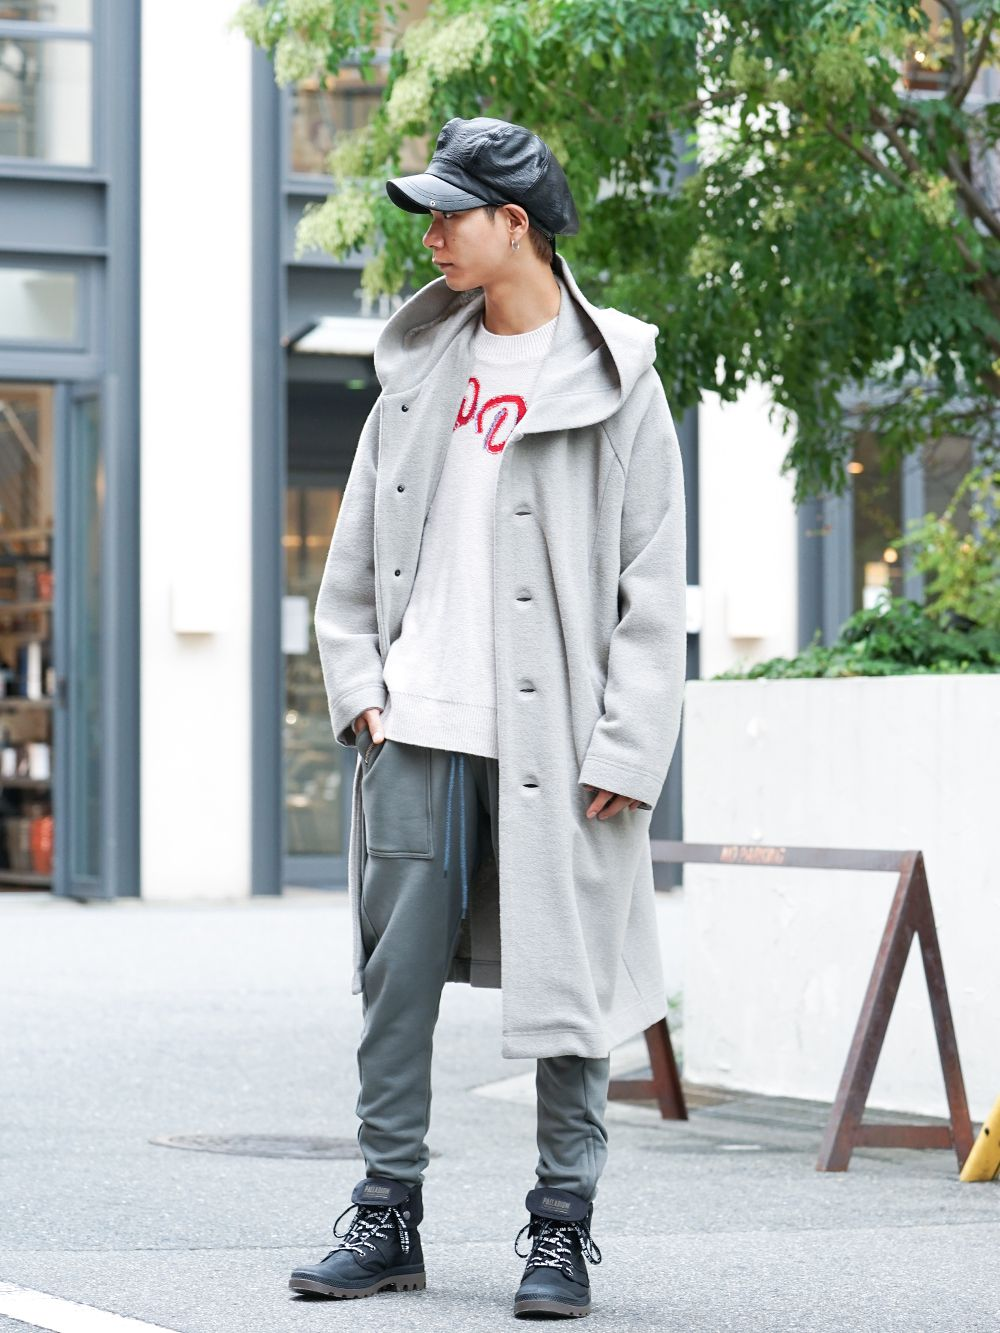 DBSS Light color Autumn styling - 1-001